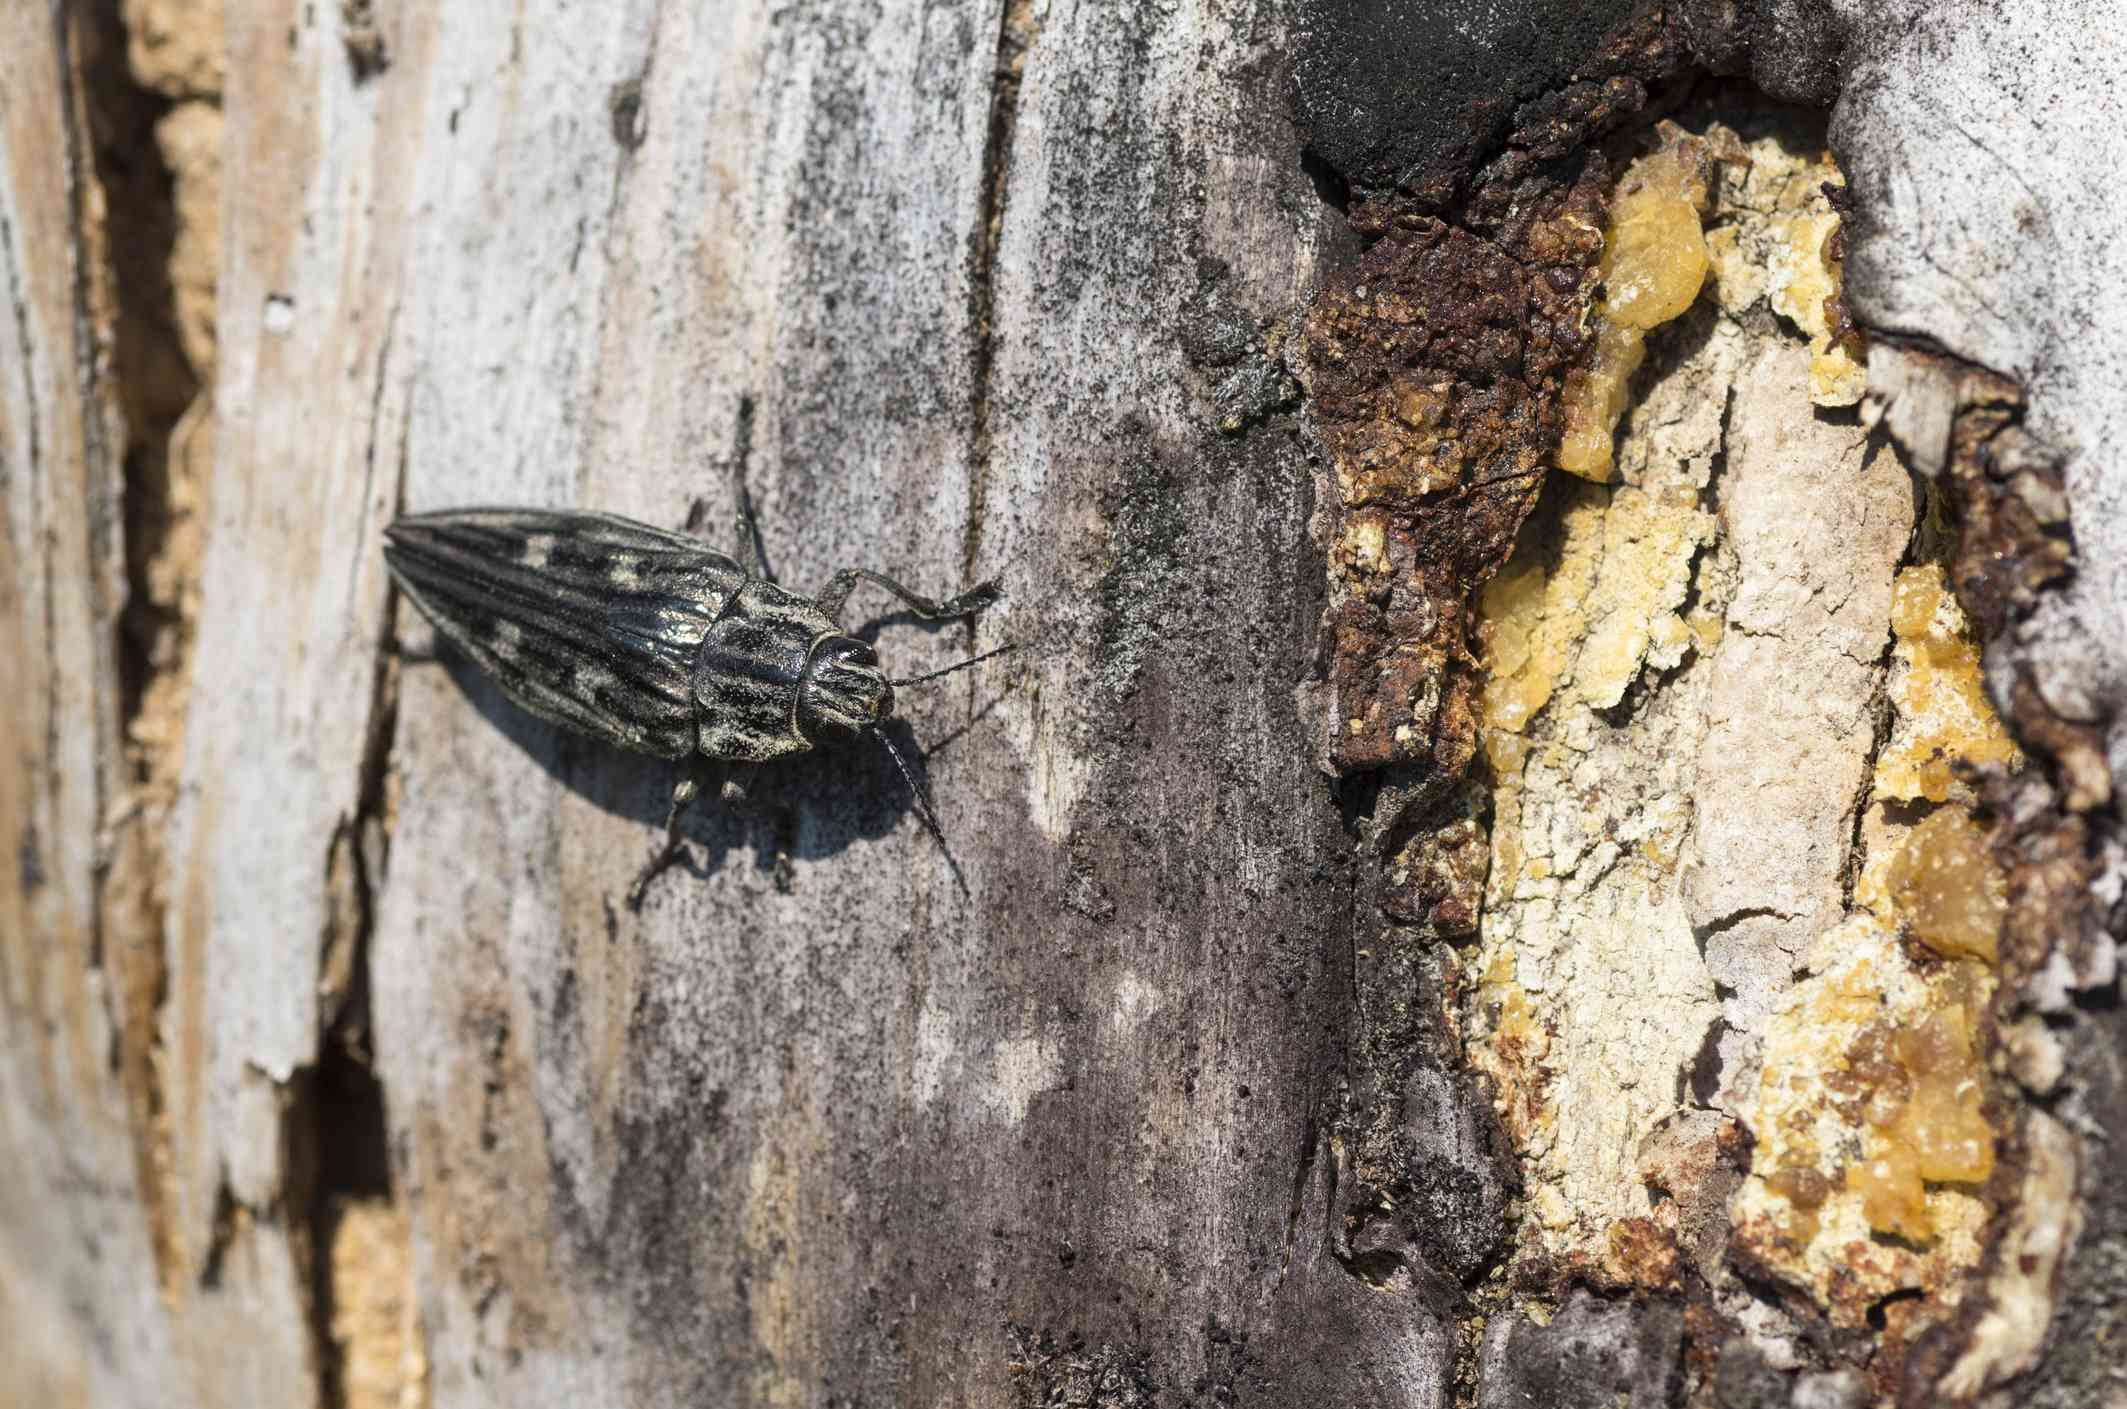 A borer beetle on the trunk of a tree